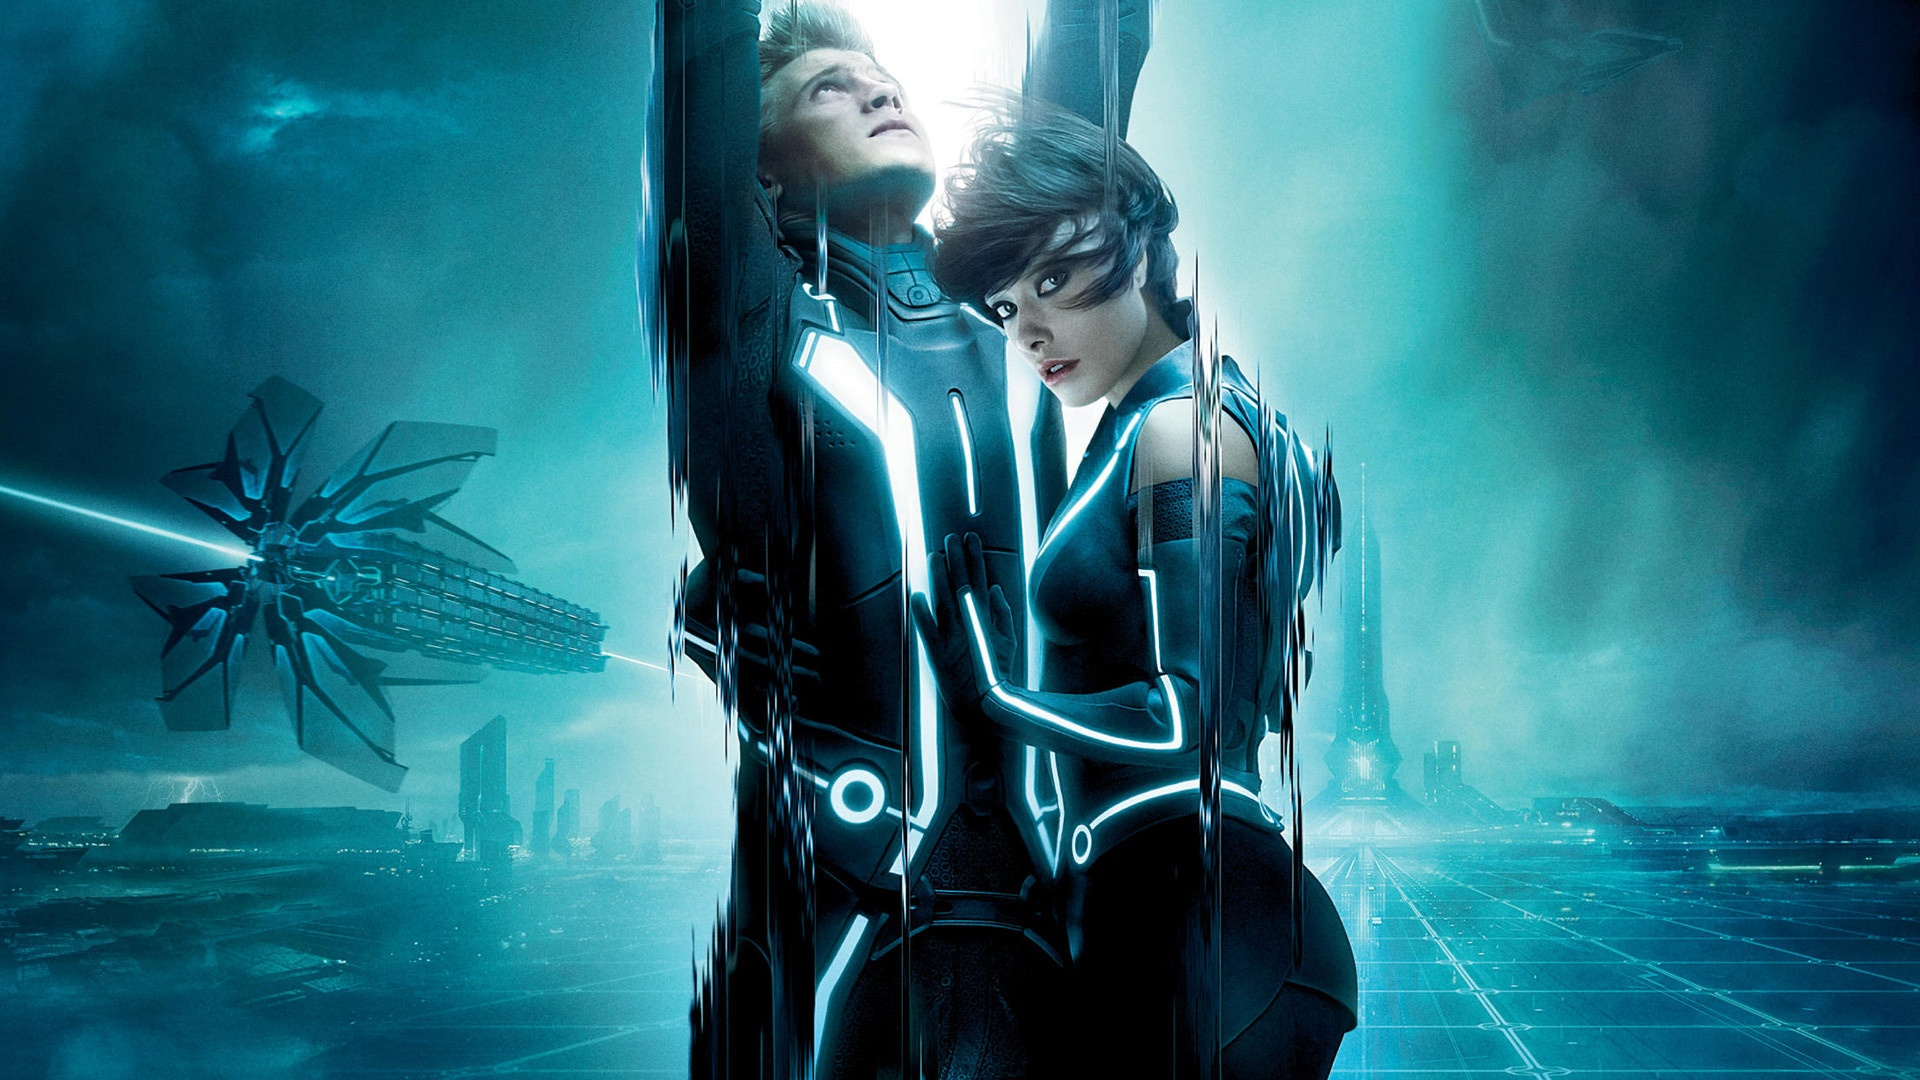 Tron Legacy 2010 Movie Wallpapers HD Wallpapers 1920x1080